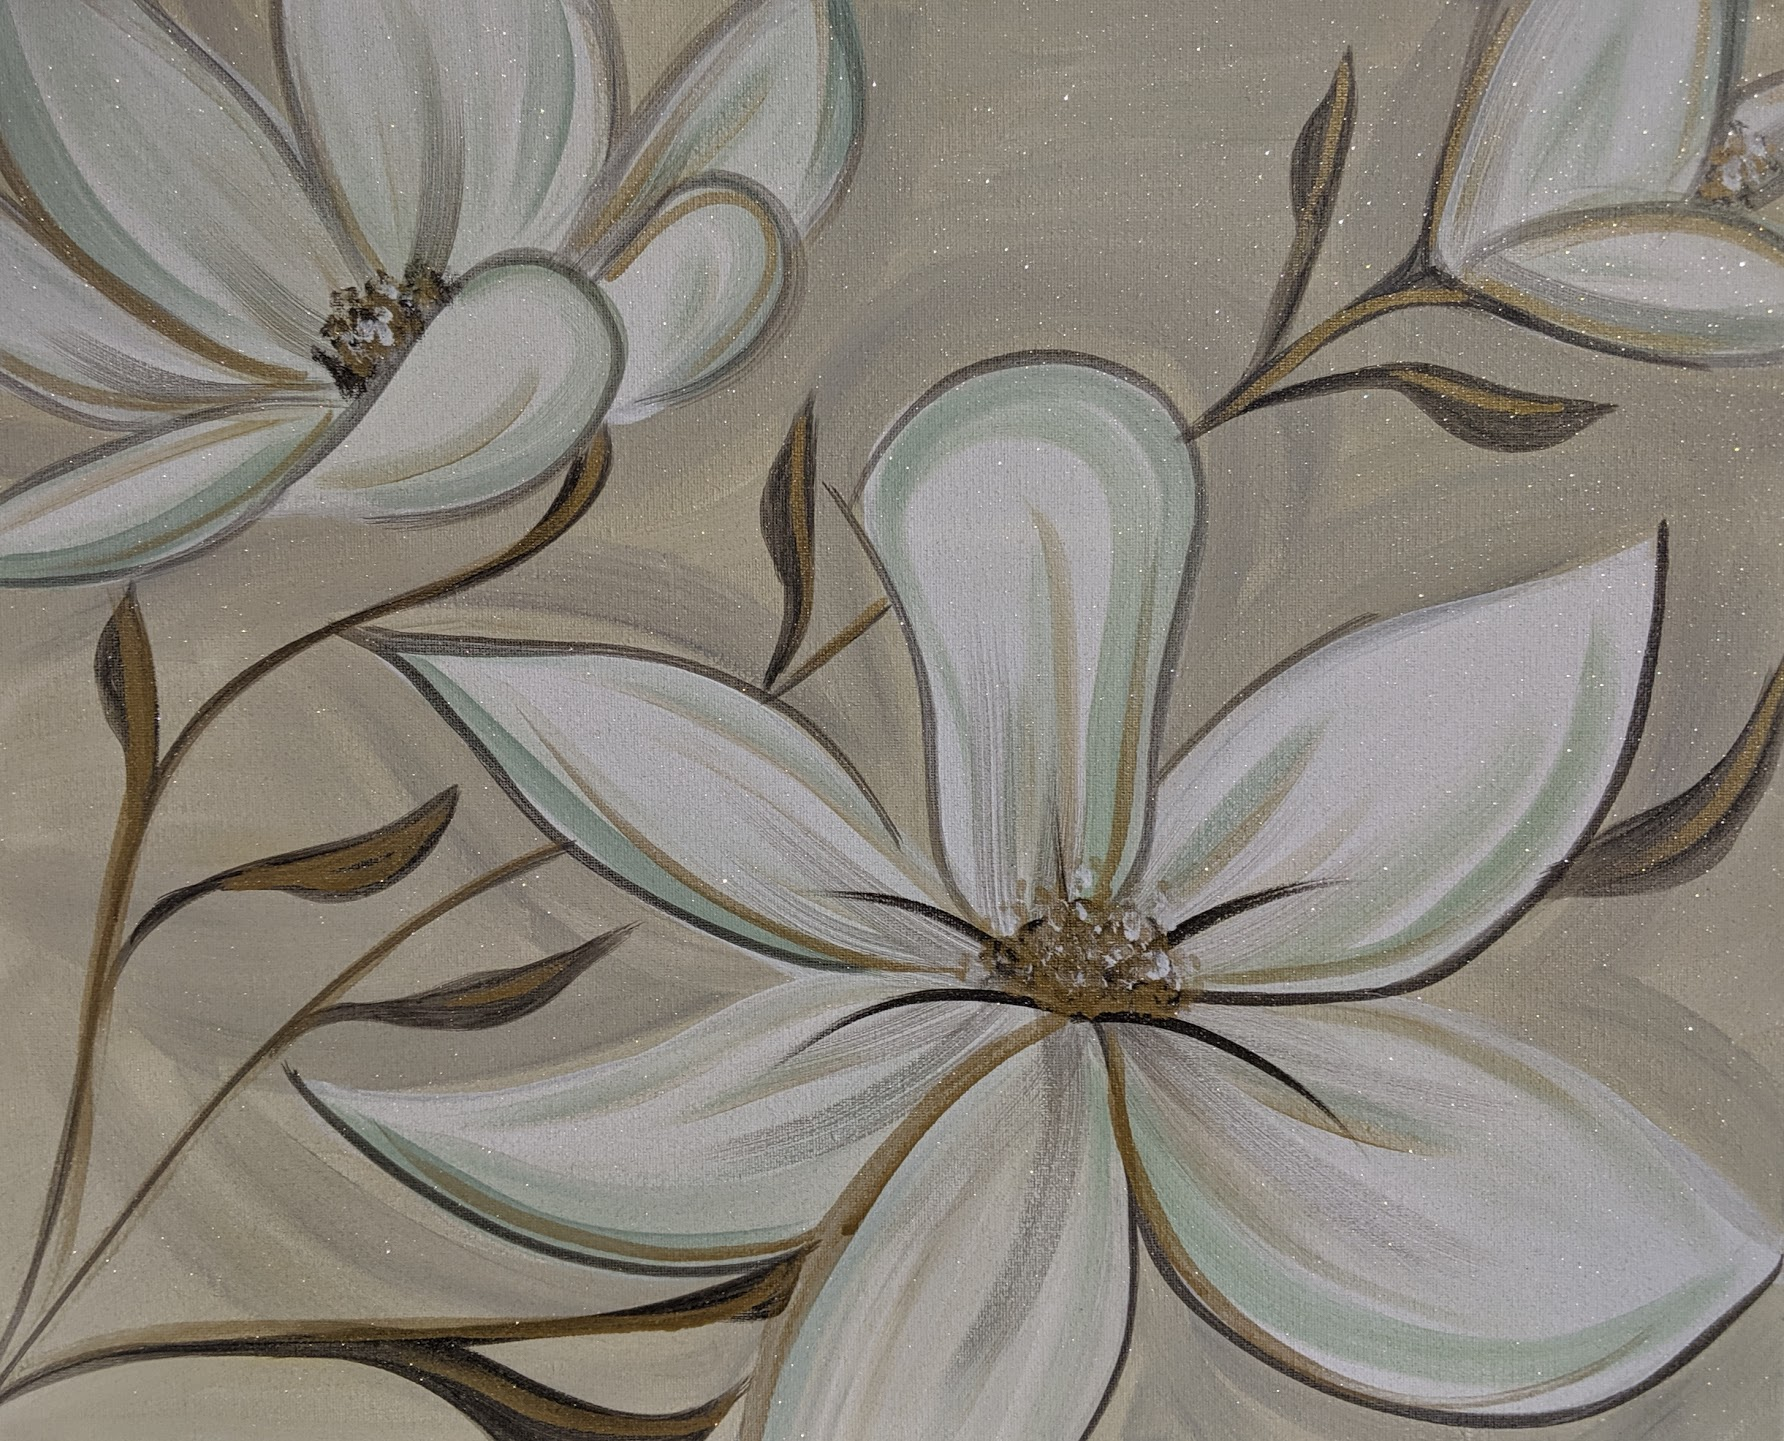 Southern Magnolias with Leaves